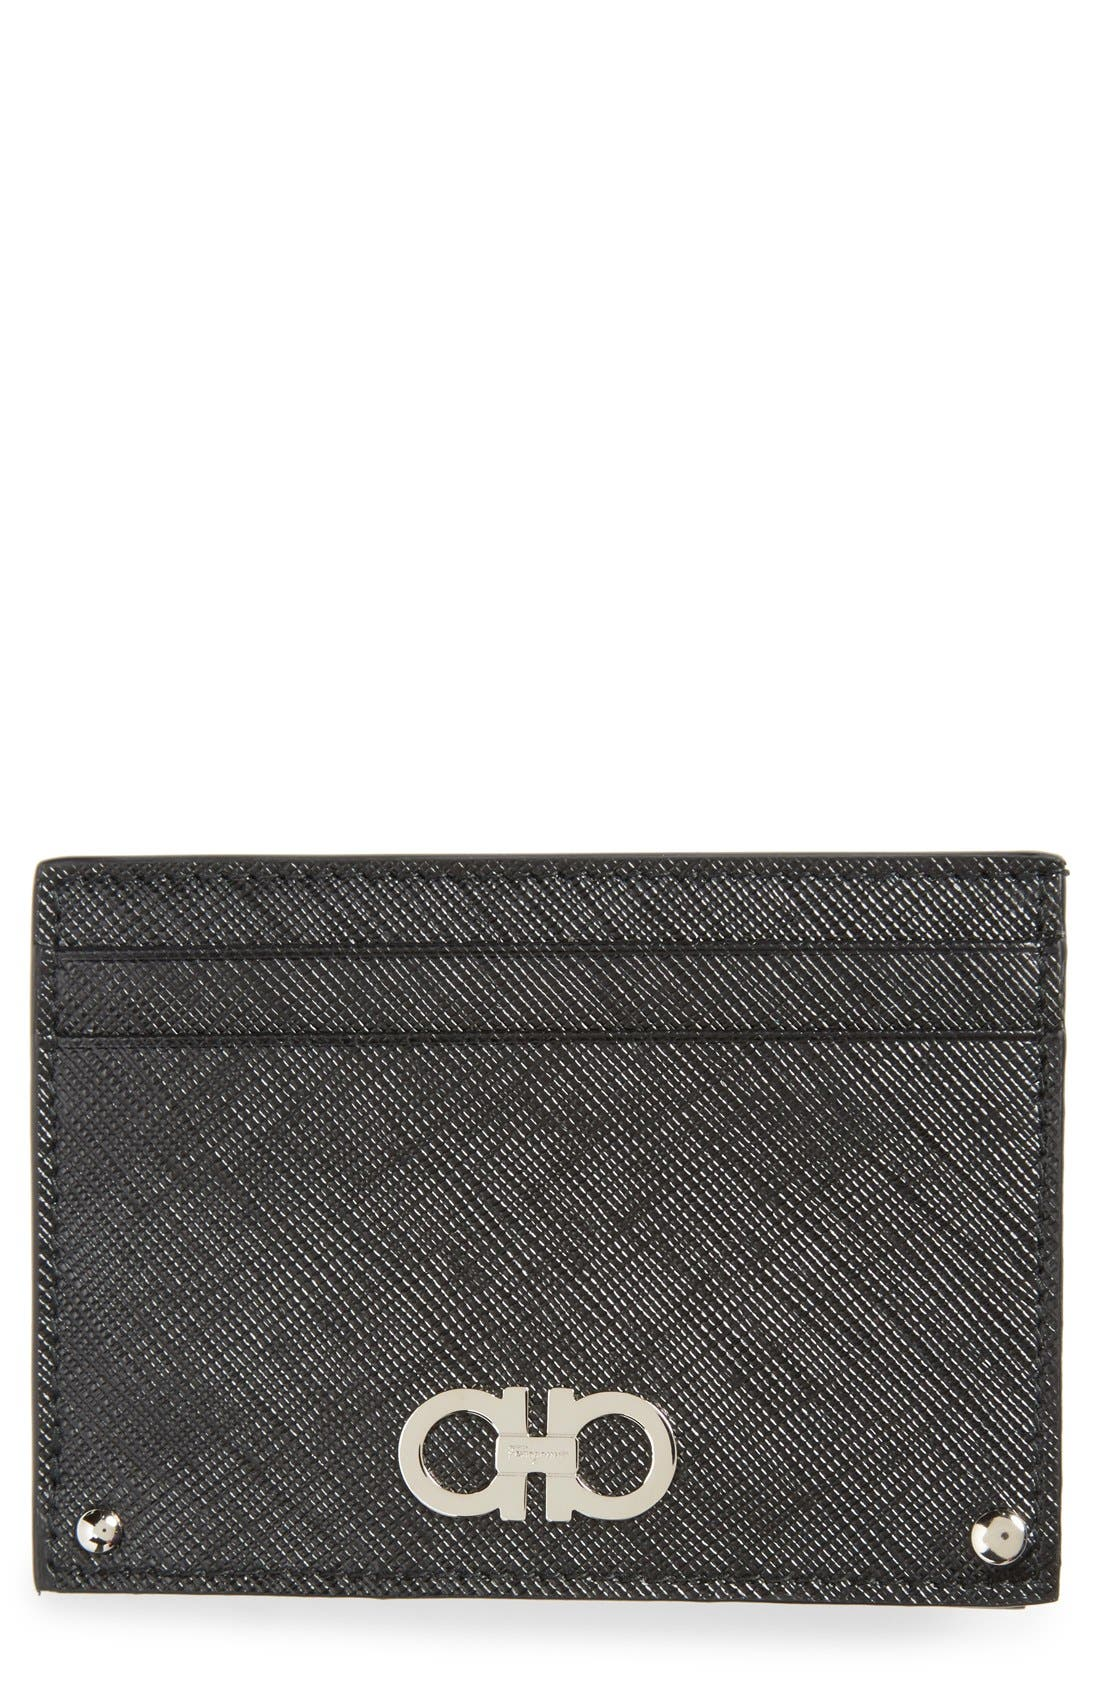 Main Image - Salvatore Ferragamo Saffiano Leather Card Case